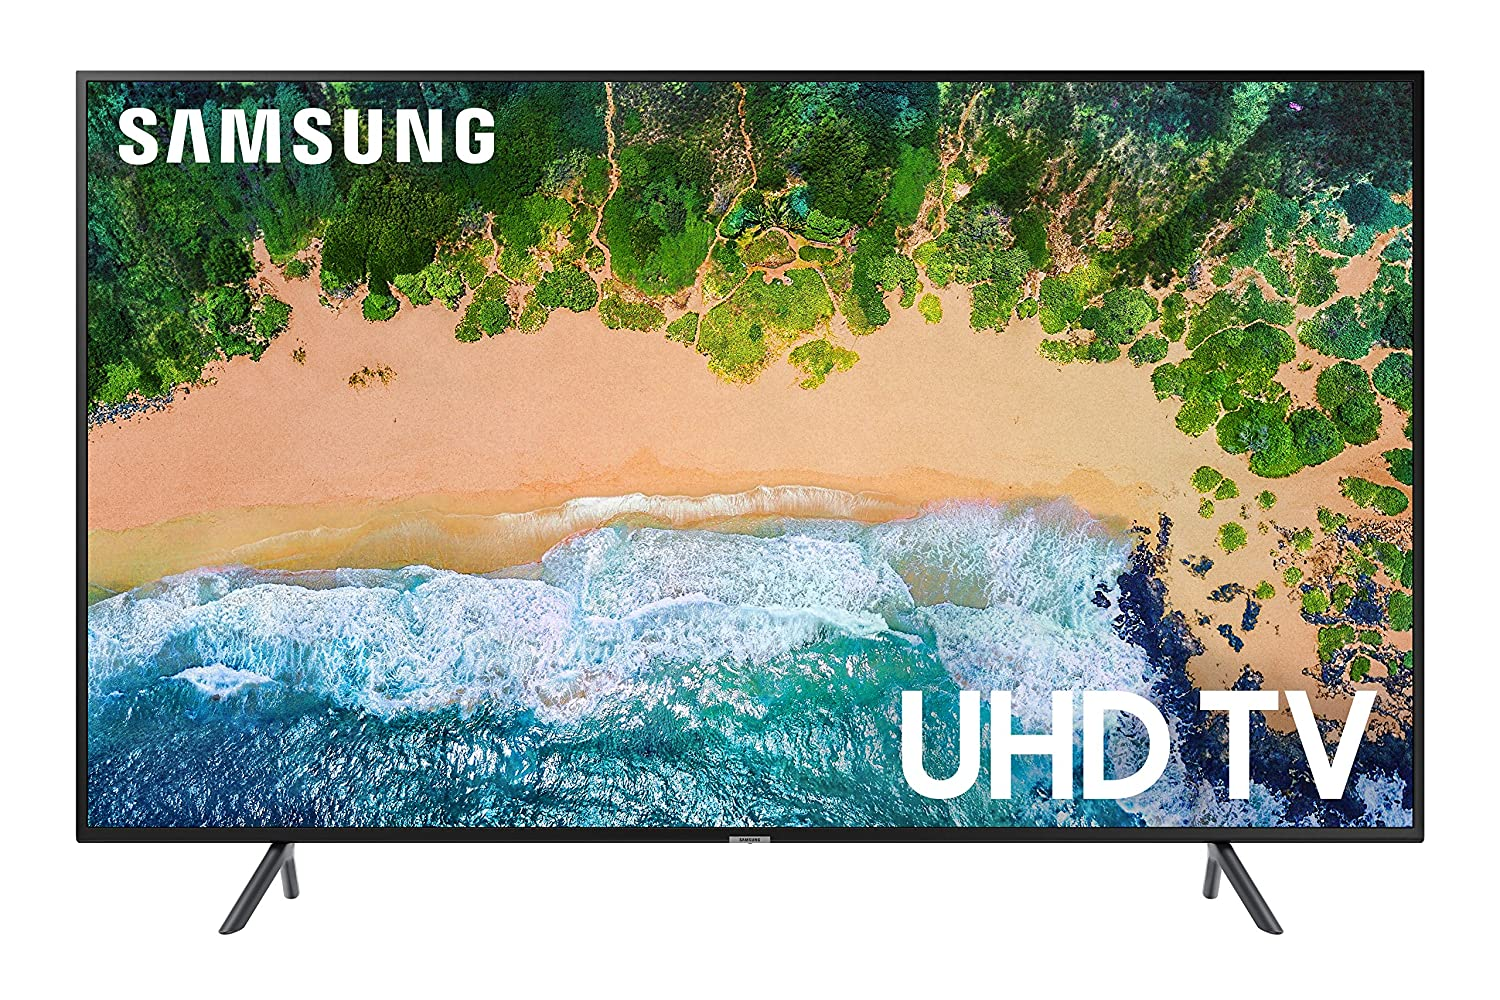 Samsung UN75NU7100 75-inch 4K Black Friday deal 2020